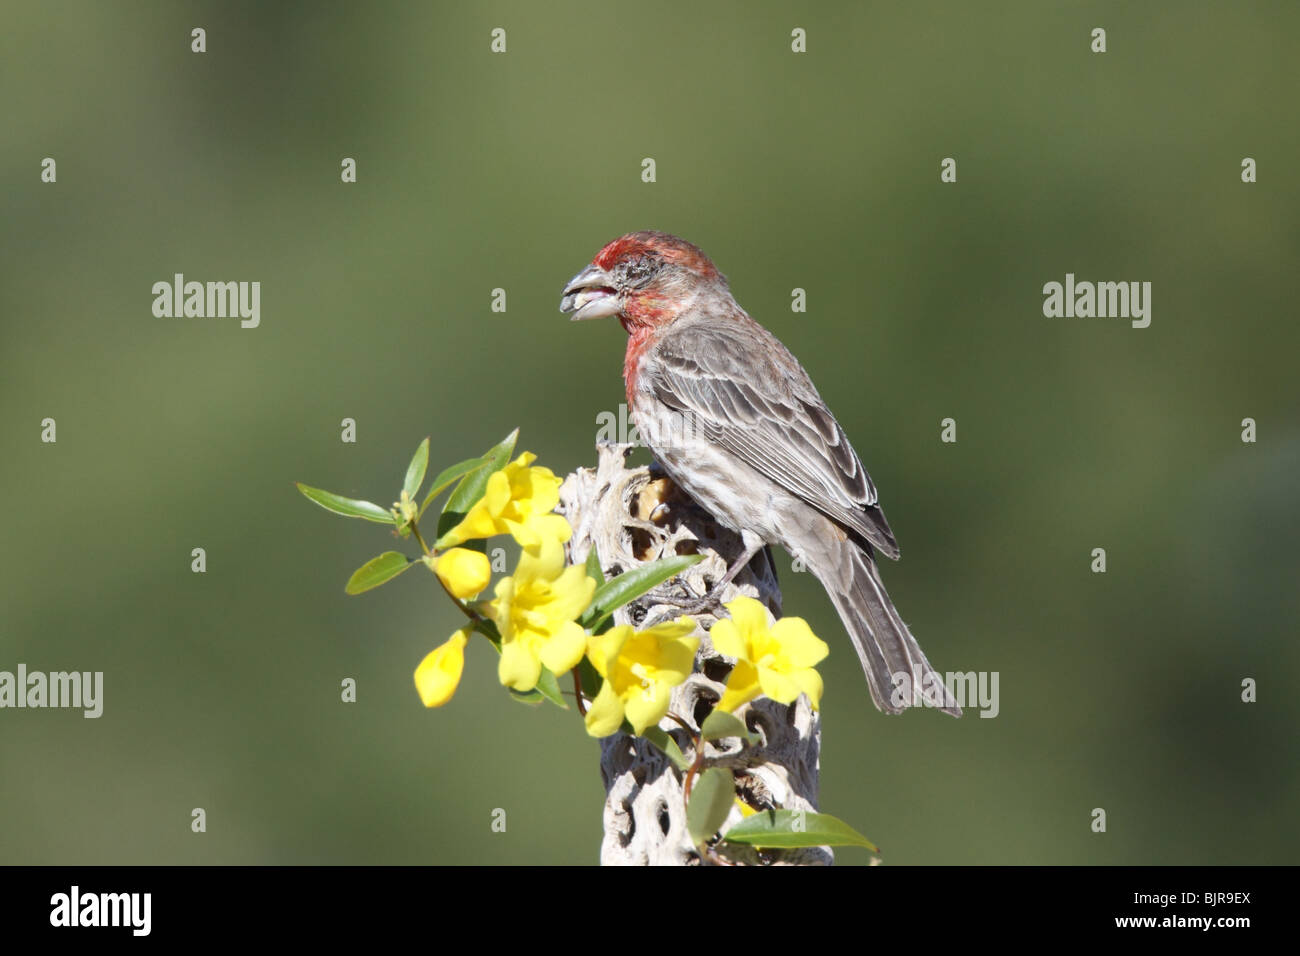 House Finch Adult Male that has lost an eye to Mycoplasmal conjunctivitis. - Stock Image